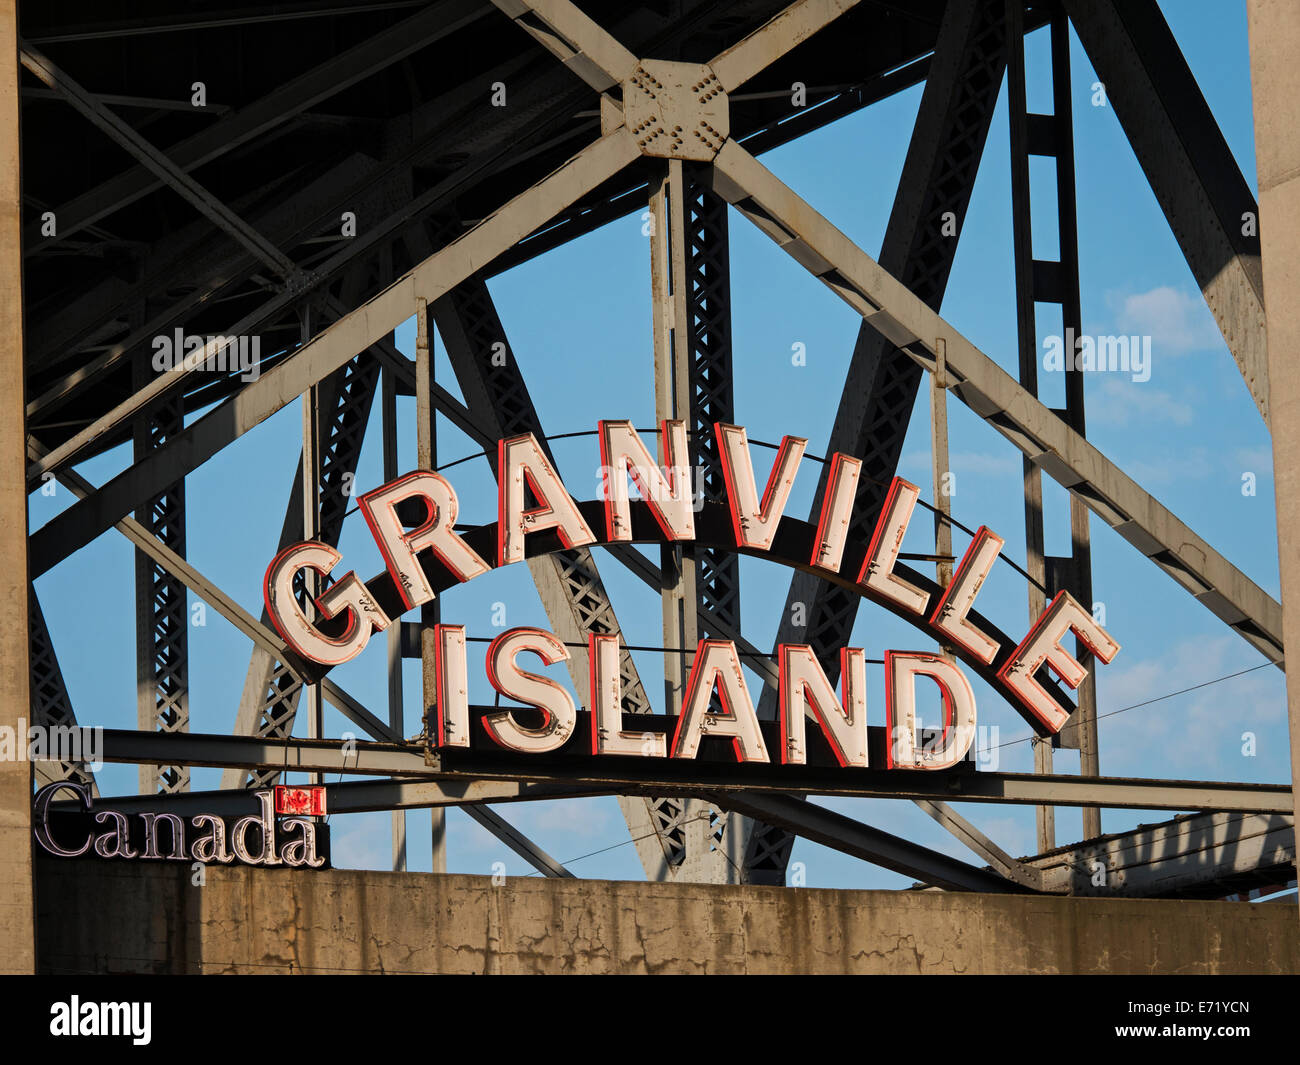 A low angle view of the neon 'Granville Island' sign at the entrance to the market, Vancouver, Canada - Stock Image